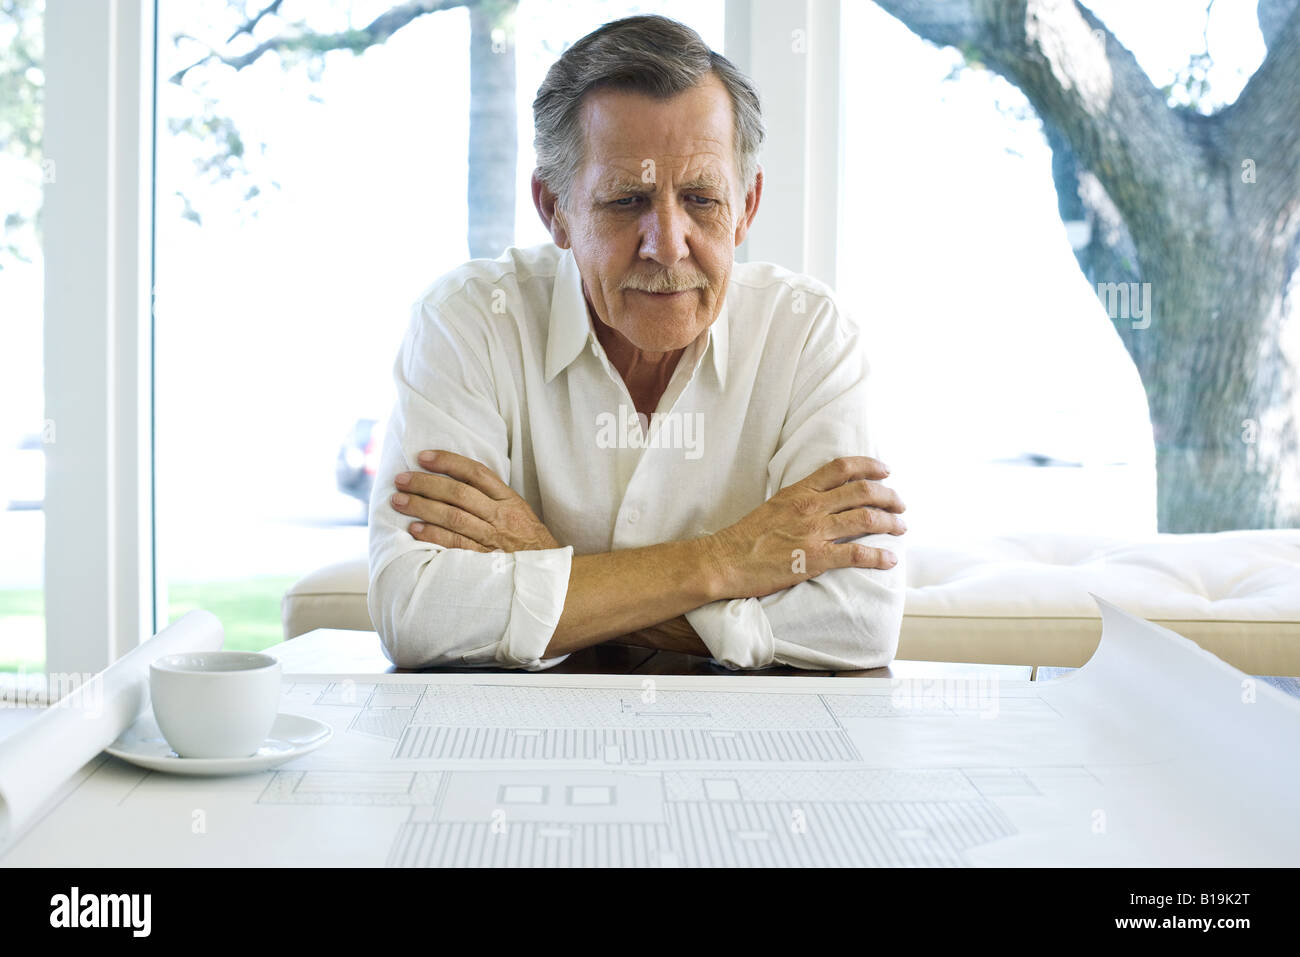 Adult architect adults blueprint arms stock photos adult architect man looking at blueprint coffee cup nearby stock image malvernweather Choice Image